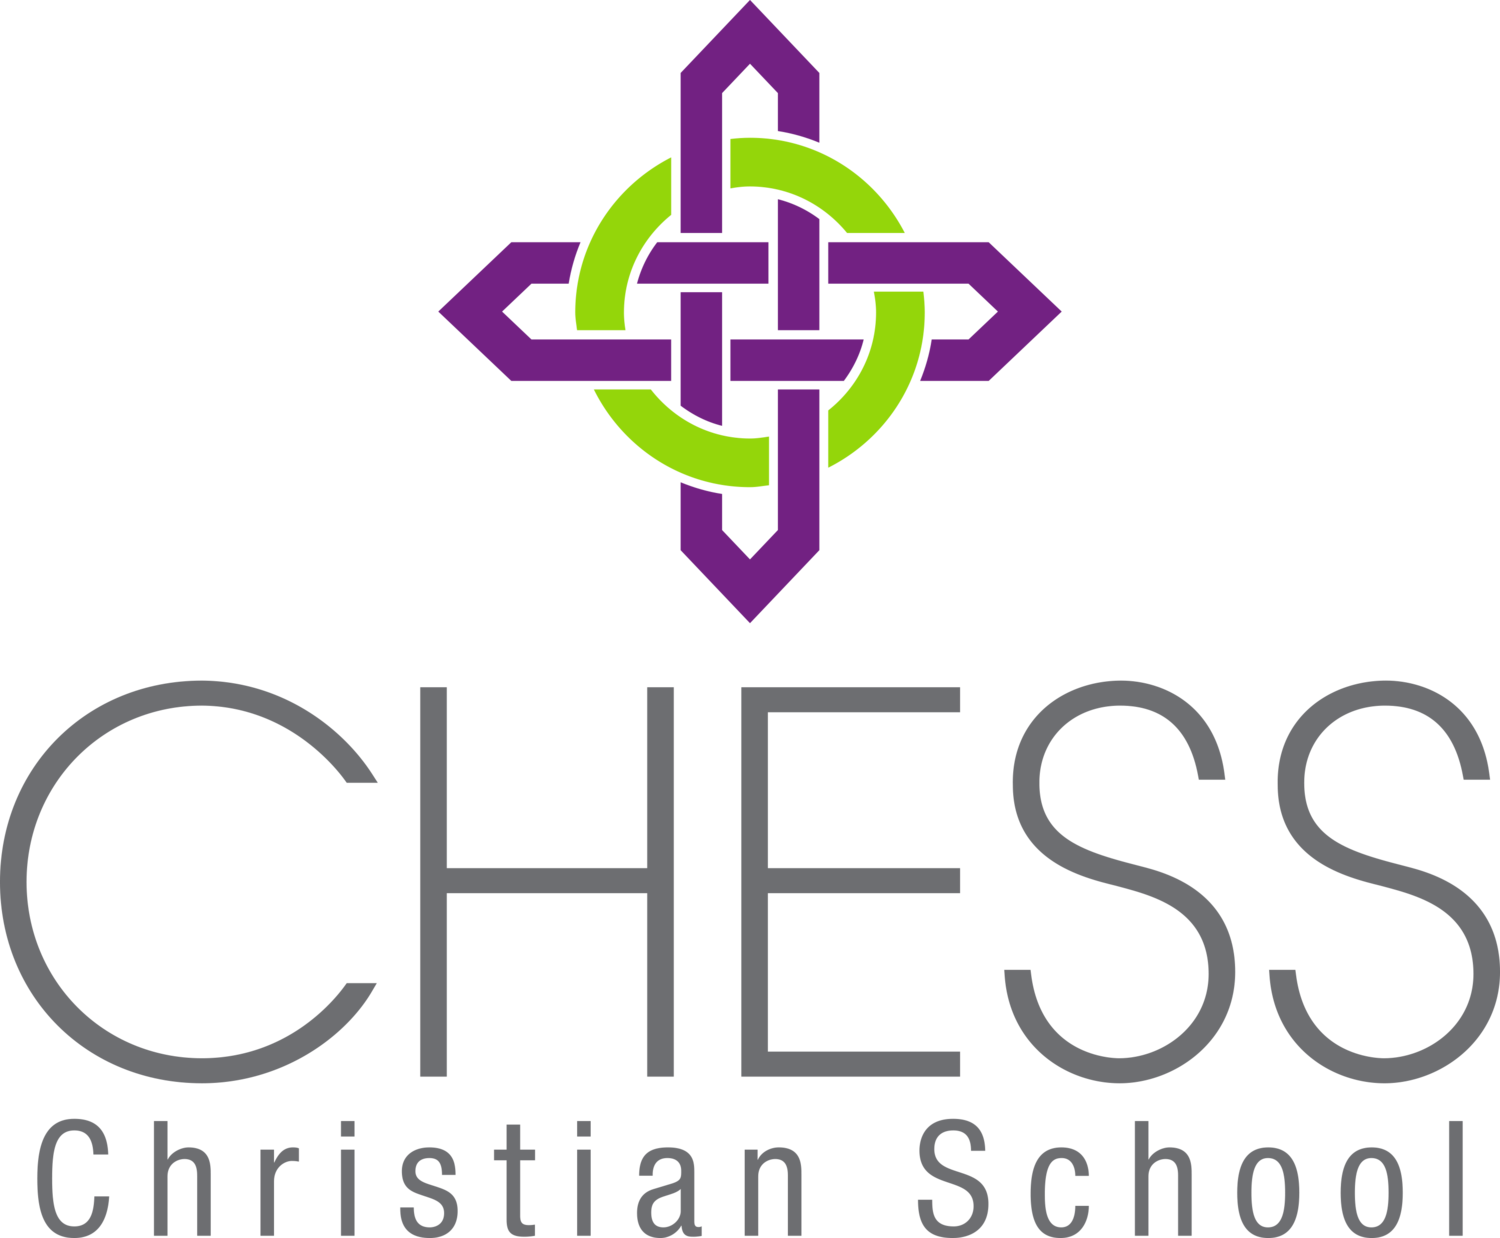 CHESS Christian School